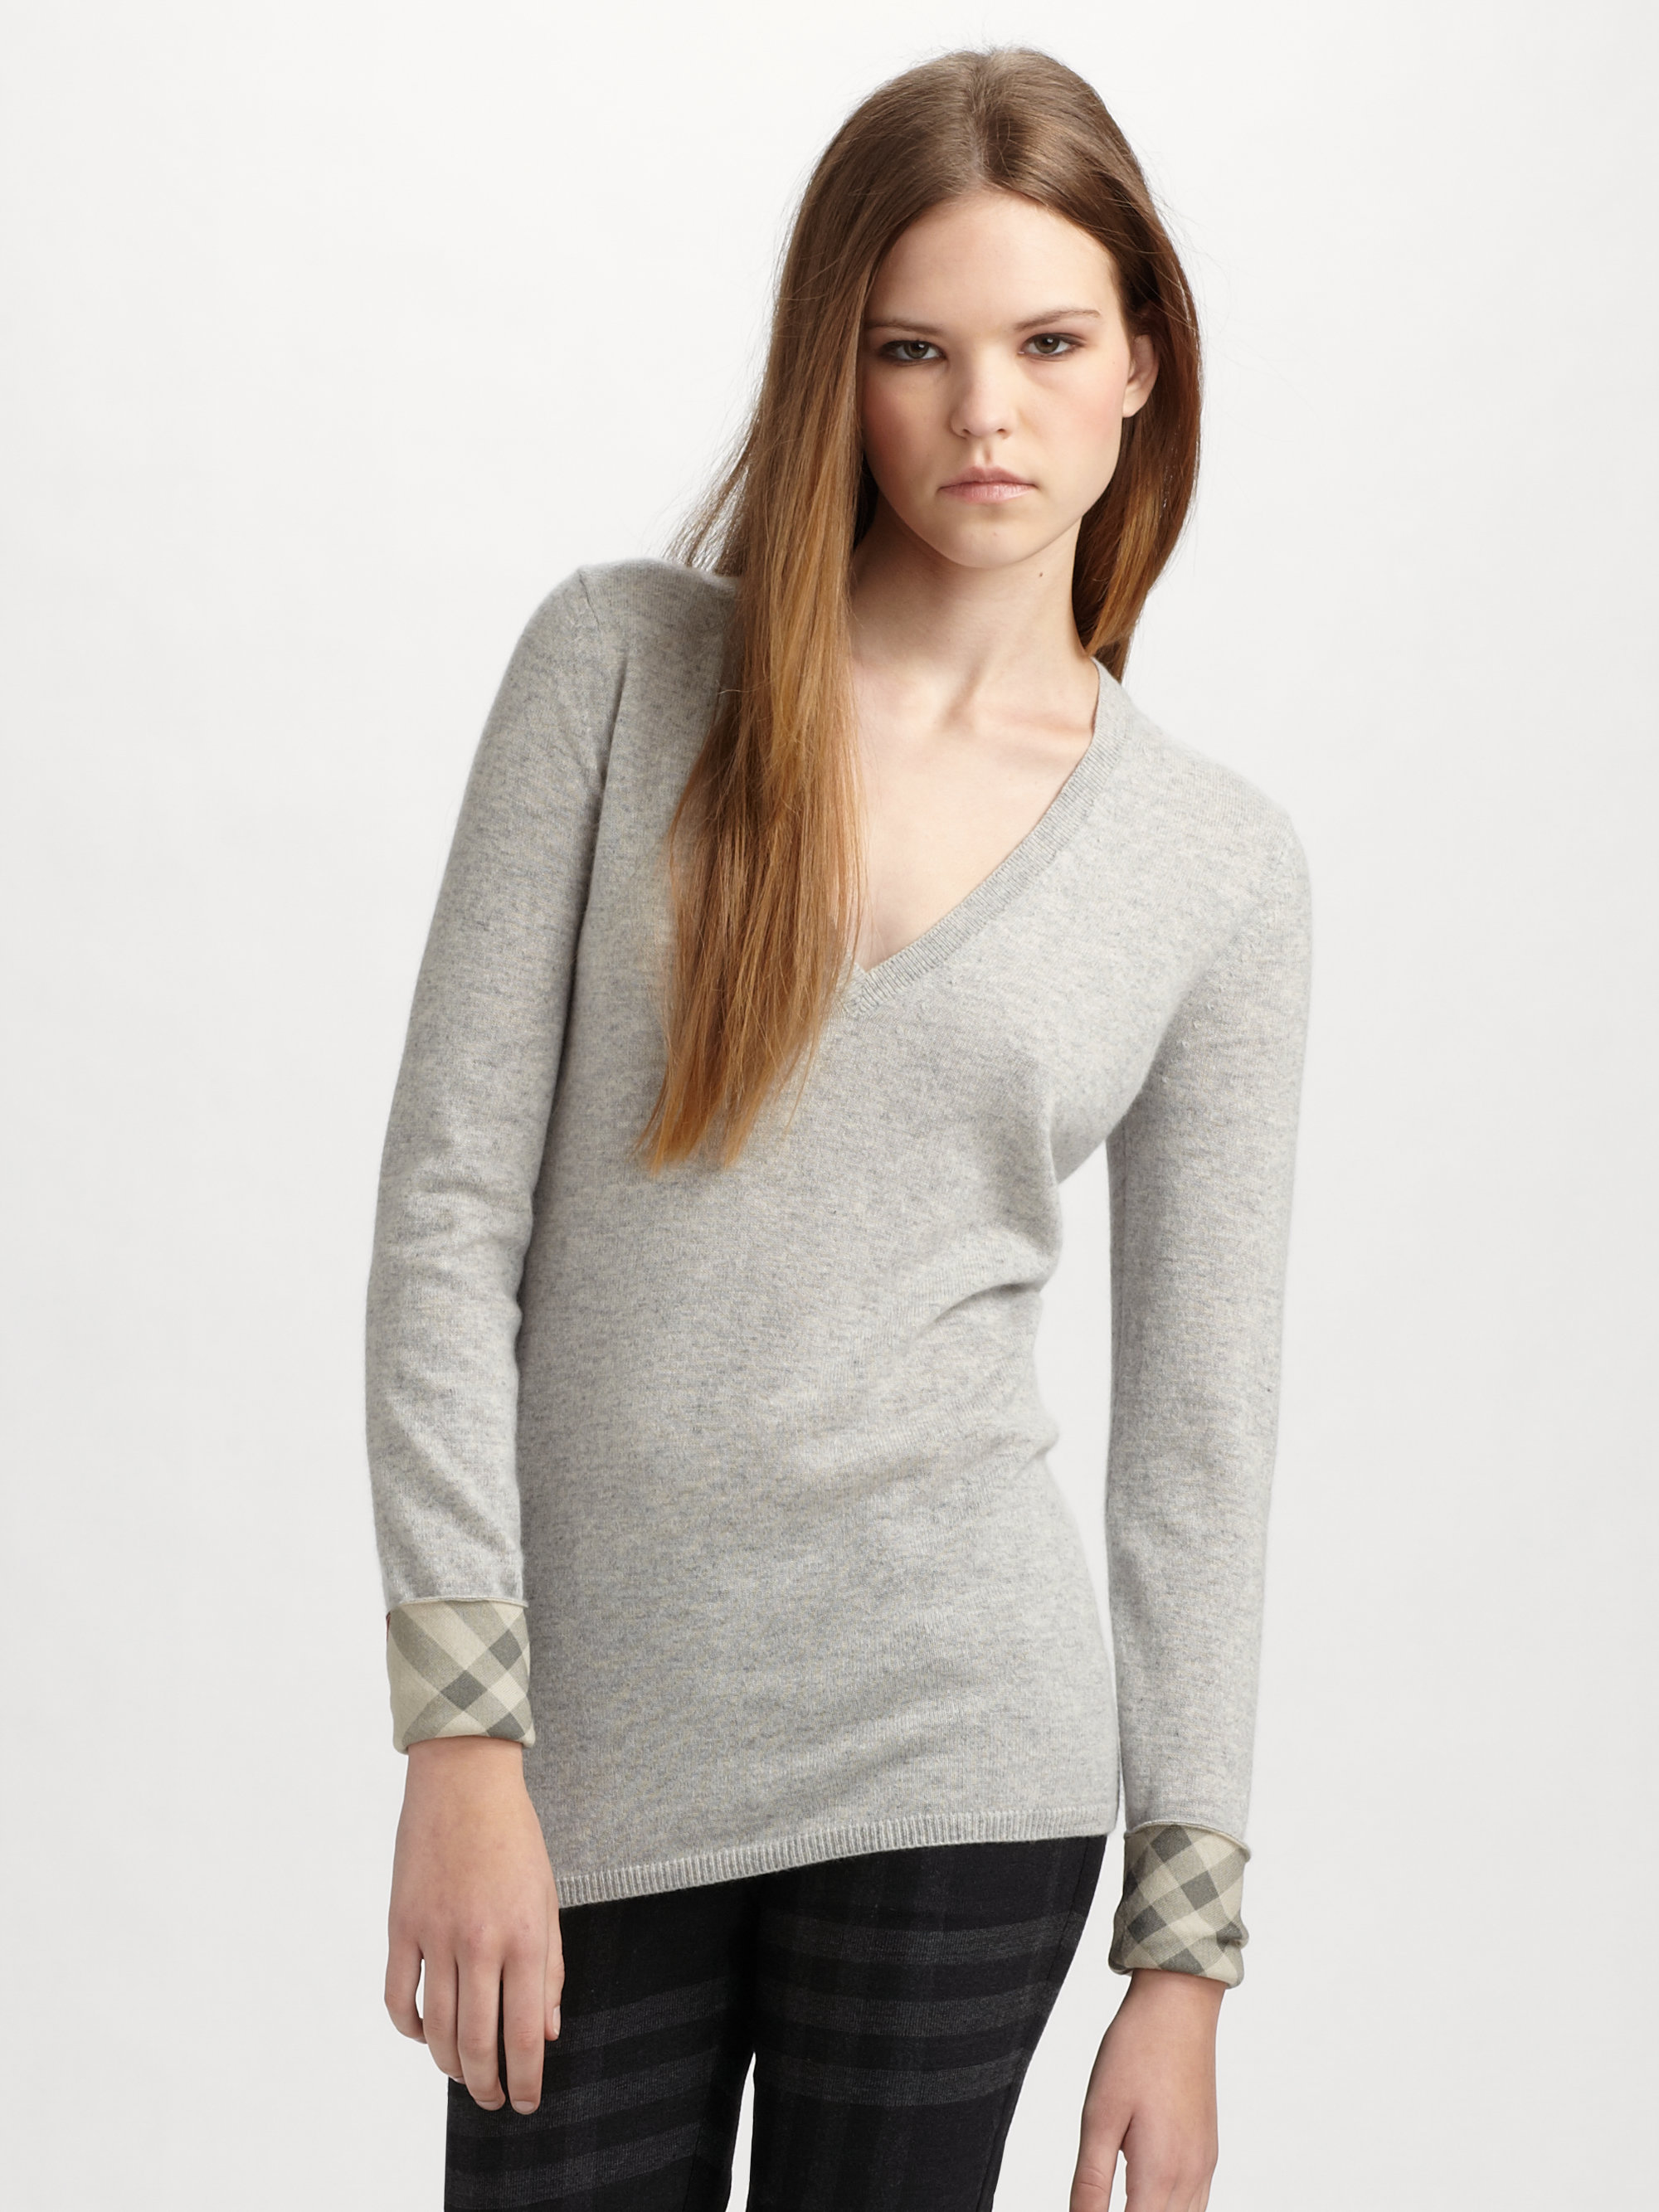 Gray Cashmere Sweater is necessary in our daily life. If you still do not have one or want to replace your old one, please buy it from LightInTheBox, the leading online store from China.